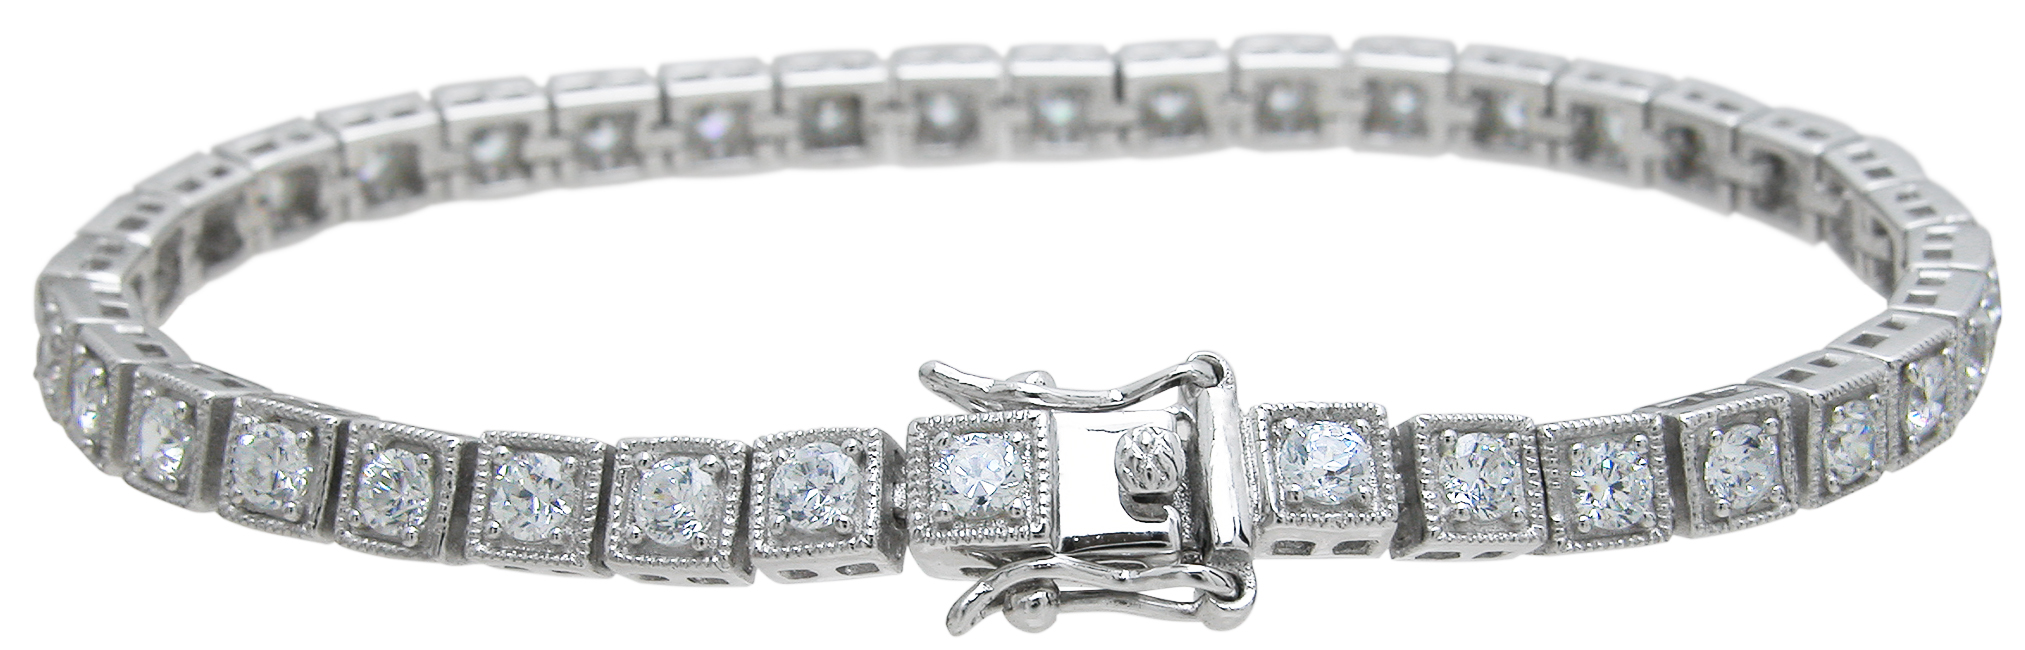 Drop Ship 925 Sterling Silver Anitque Style Bracelet